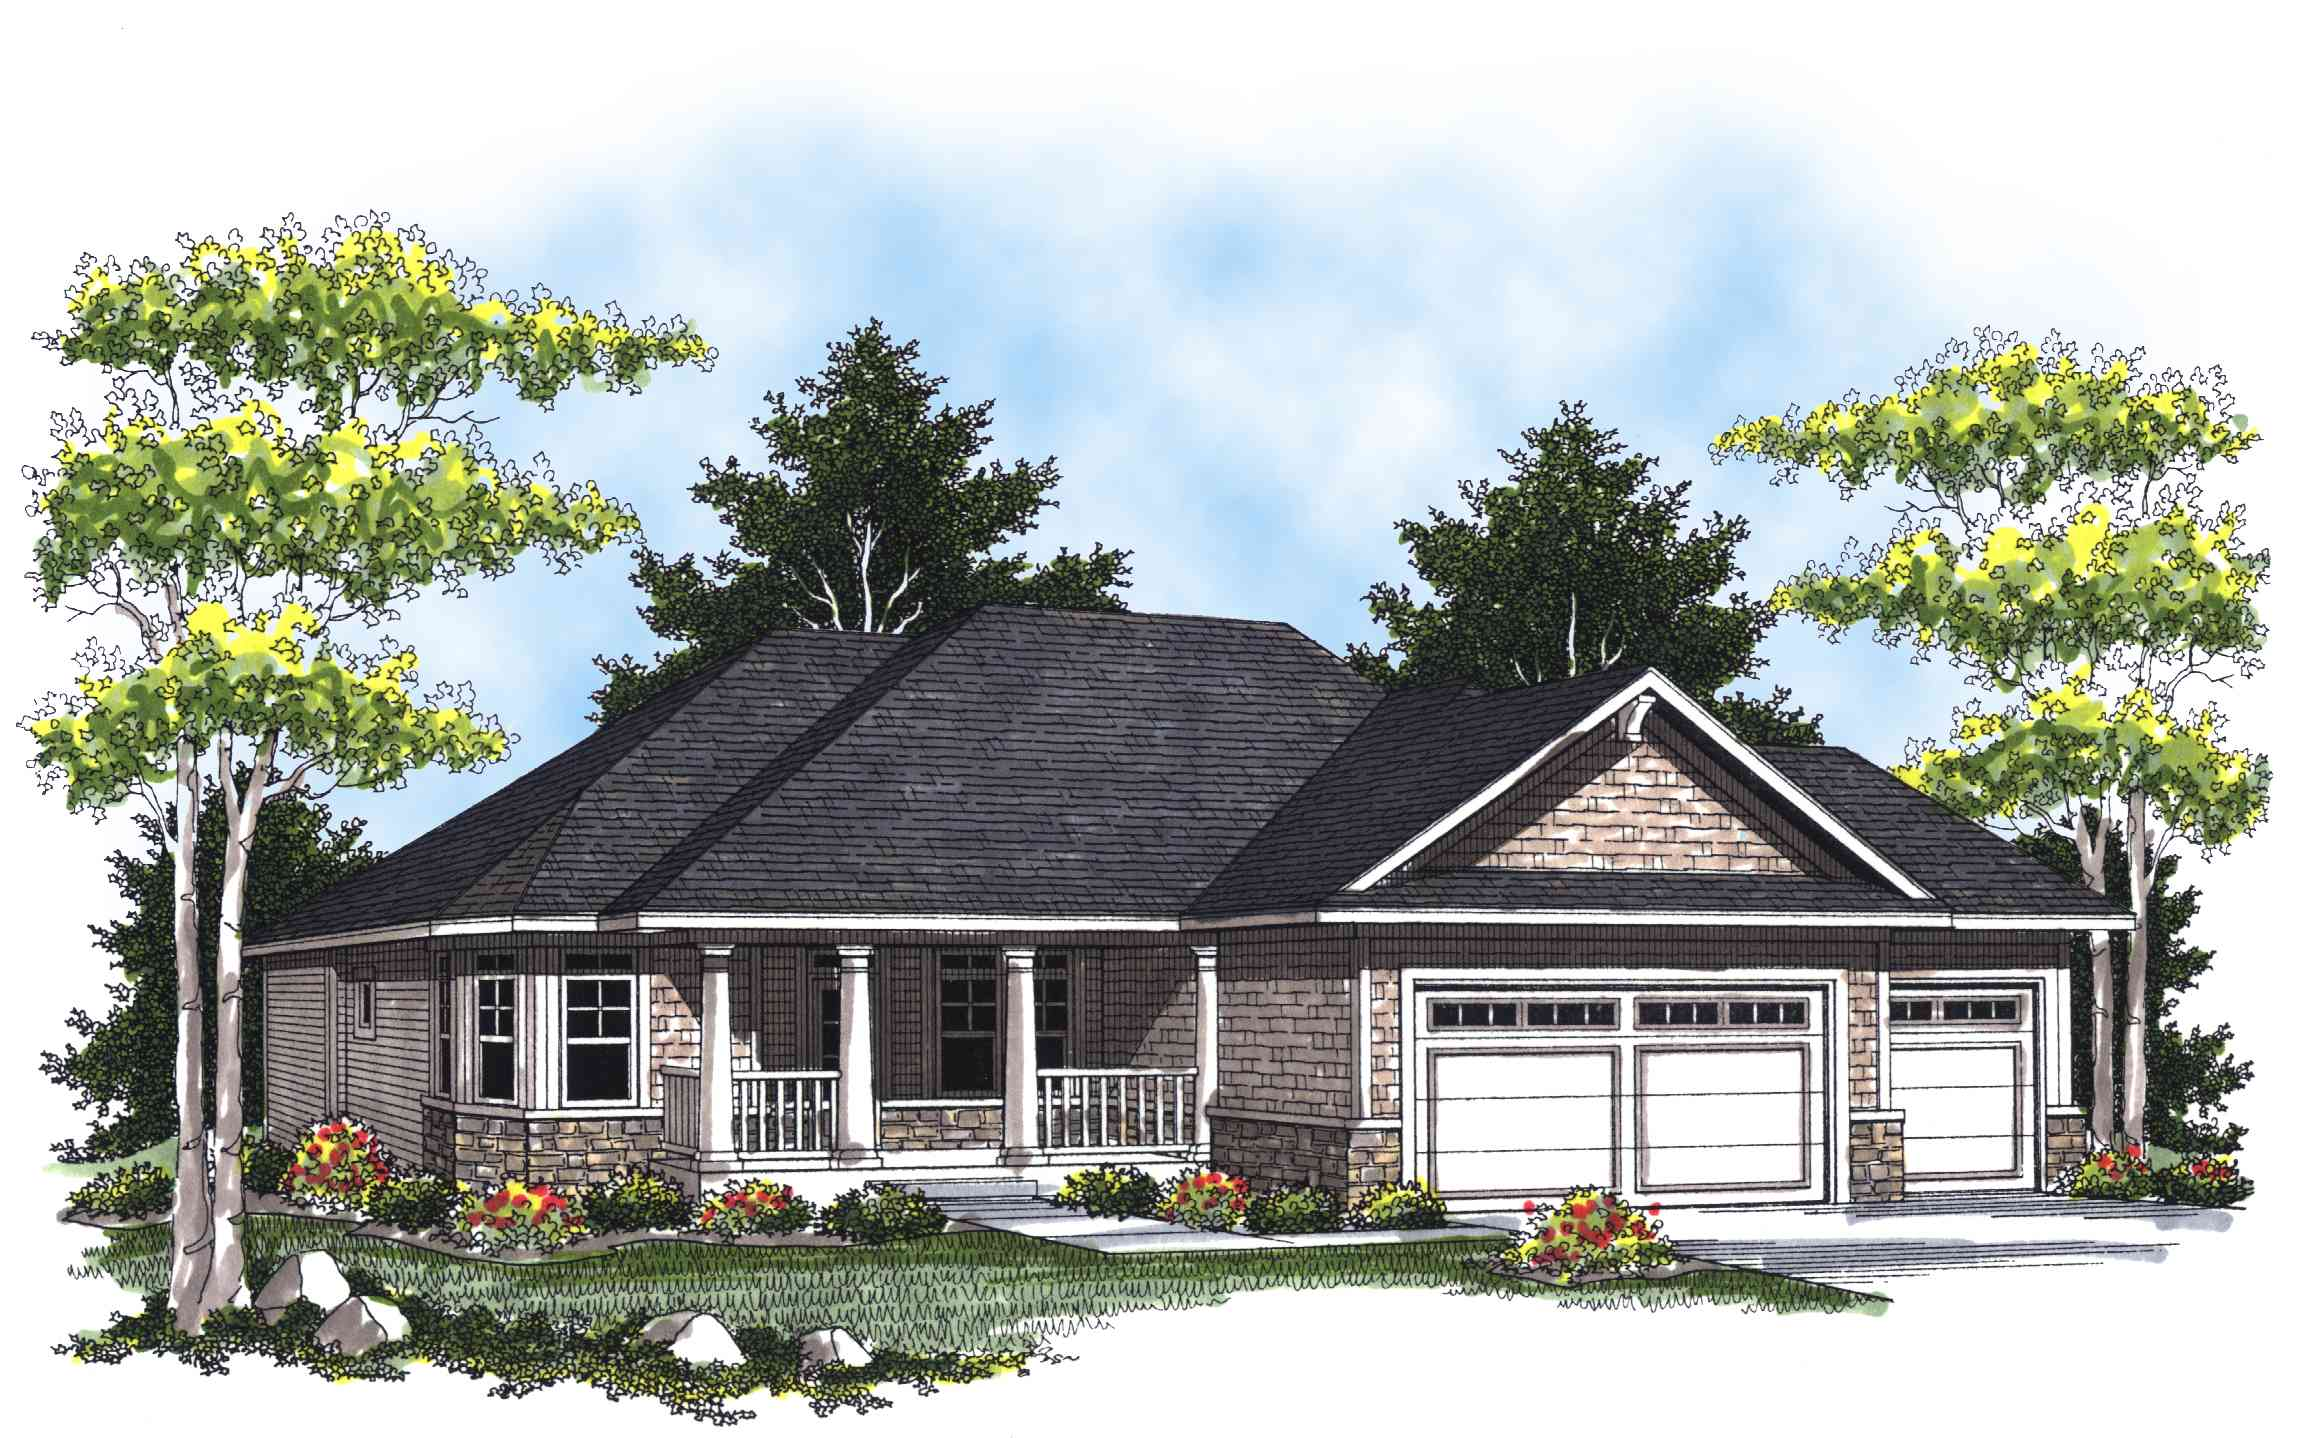 Charming ranch home plan 89263ah architectural designs for Charming house plans